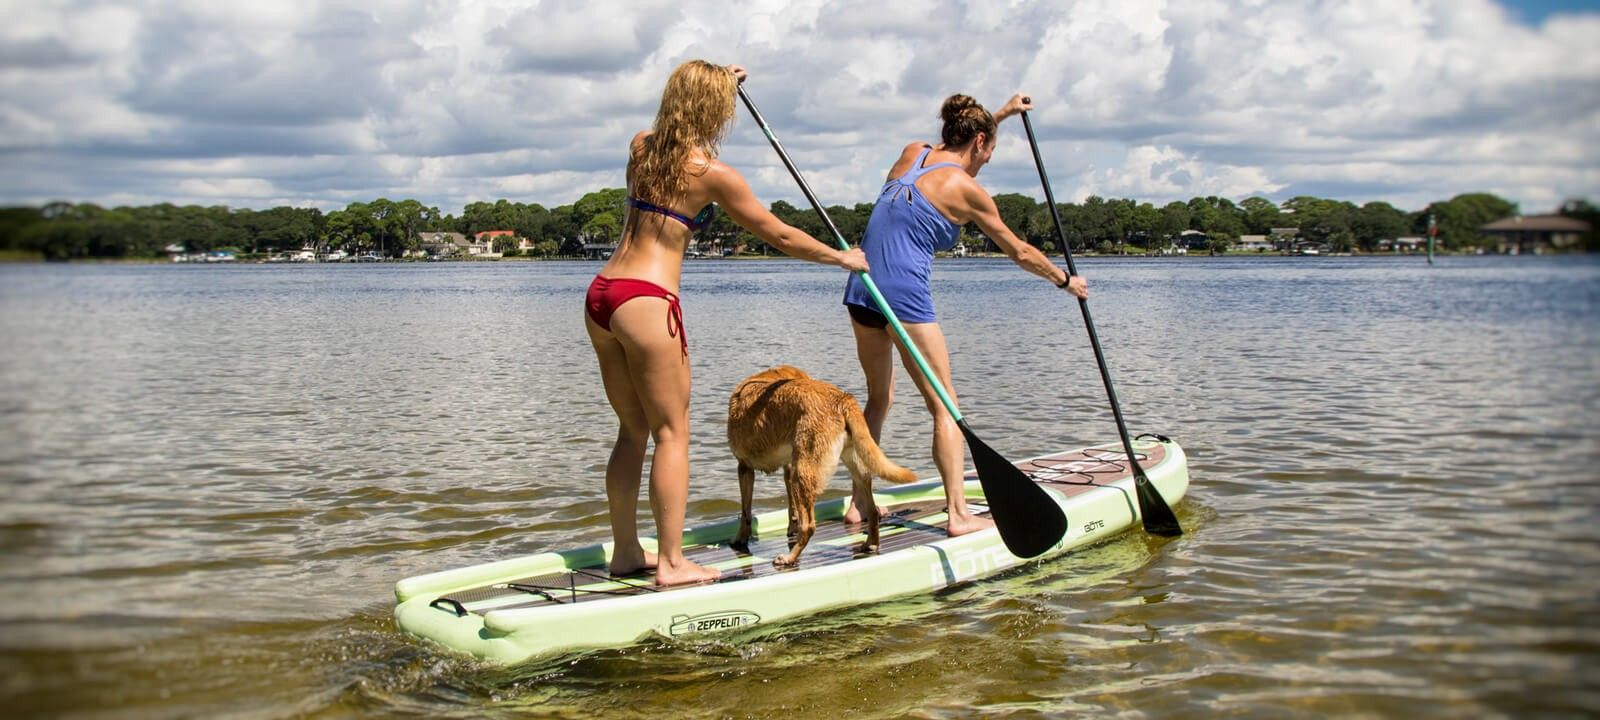 Bote Zeppelin Inflatable Fishing Paddle Board Paddle Board Fishing Paddle Boarding Standup Paddle